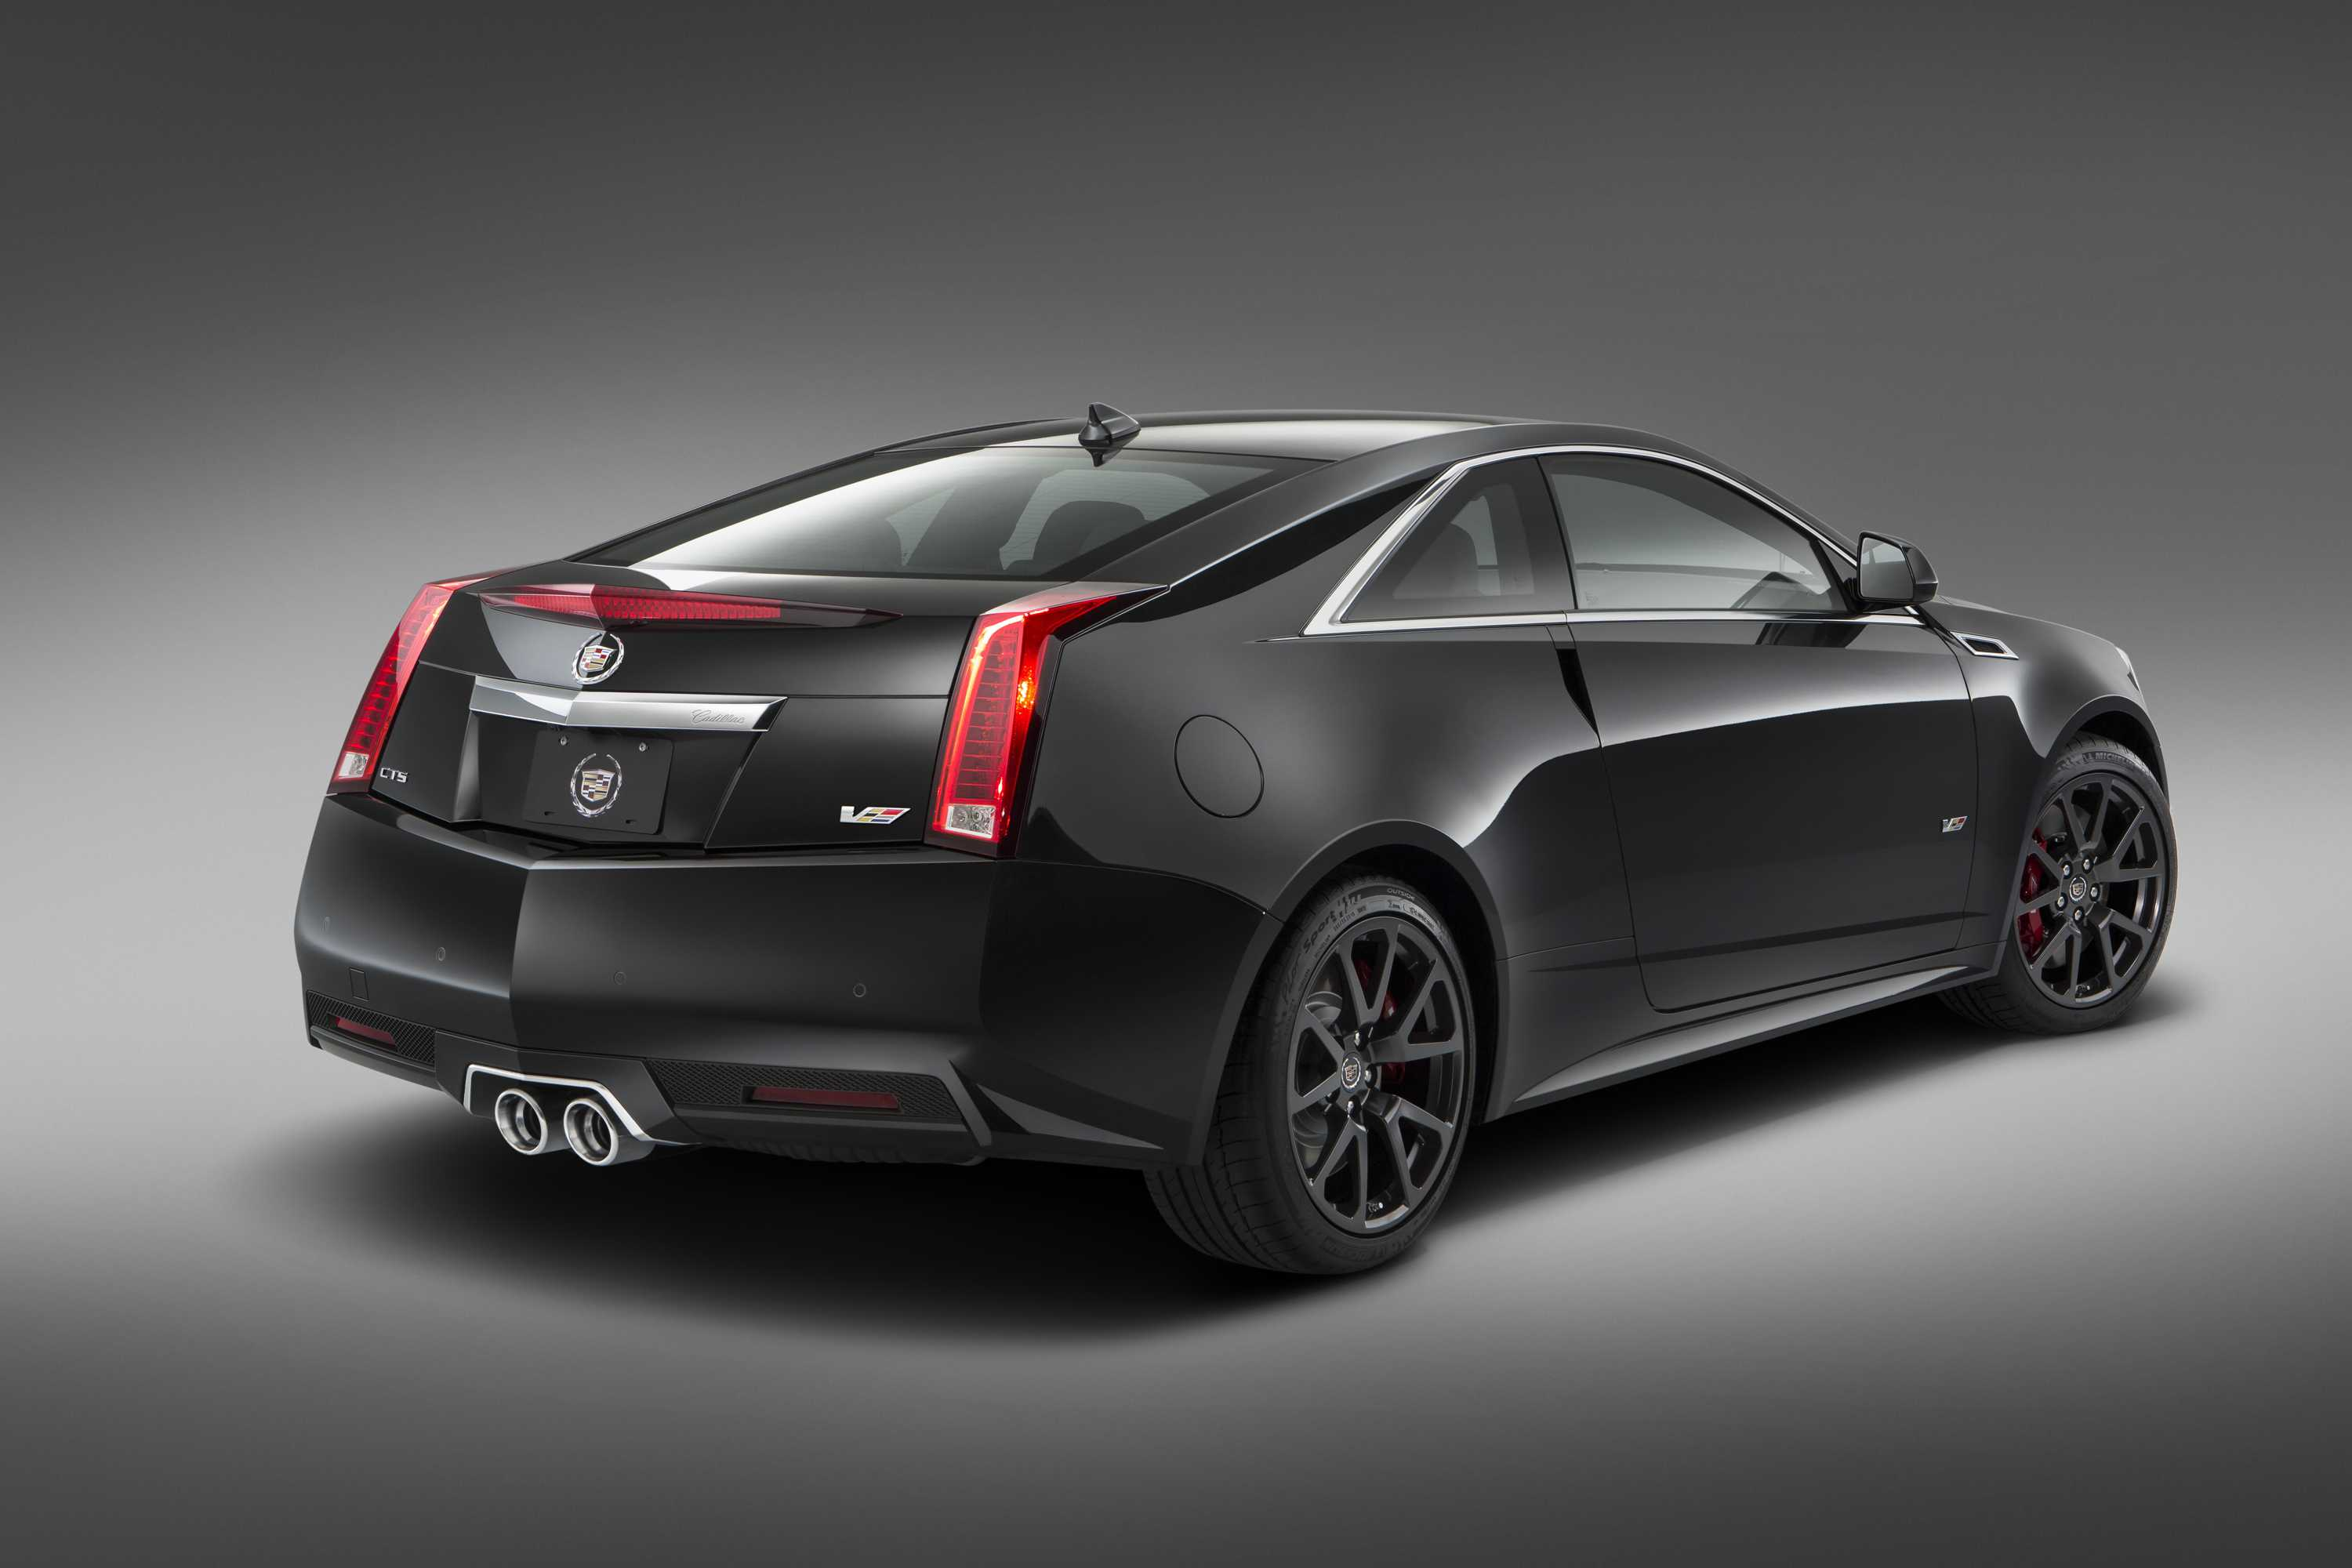 cadillac-cts-coupe-back-side-0-211656 Great Description About 2012 Cts-v for Sale with Inspiring Images Cars Review